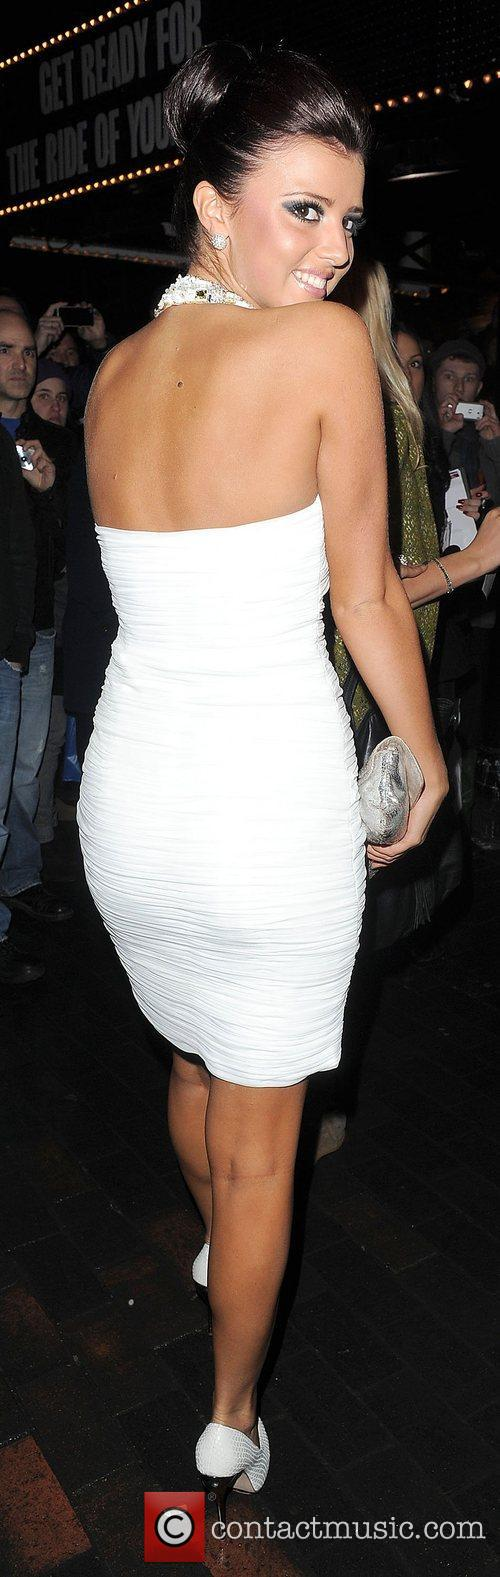 Lucy Meck 'Priscilla Parties -Launch' held at the...